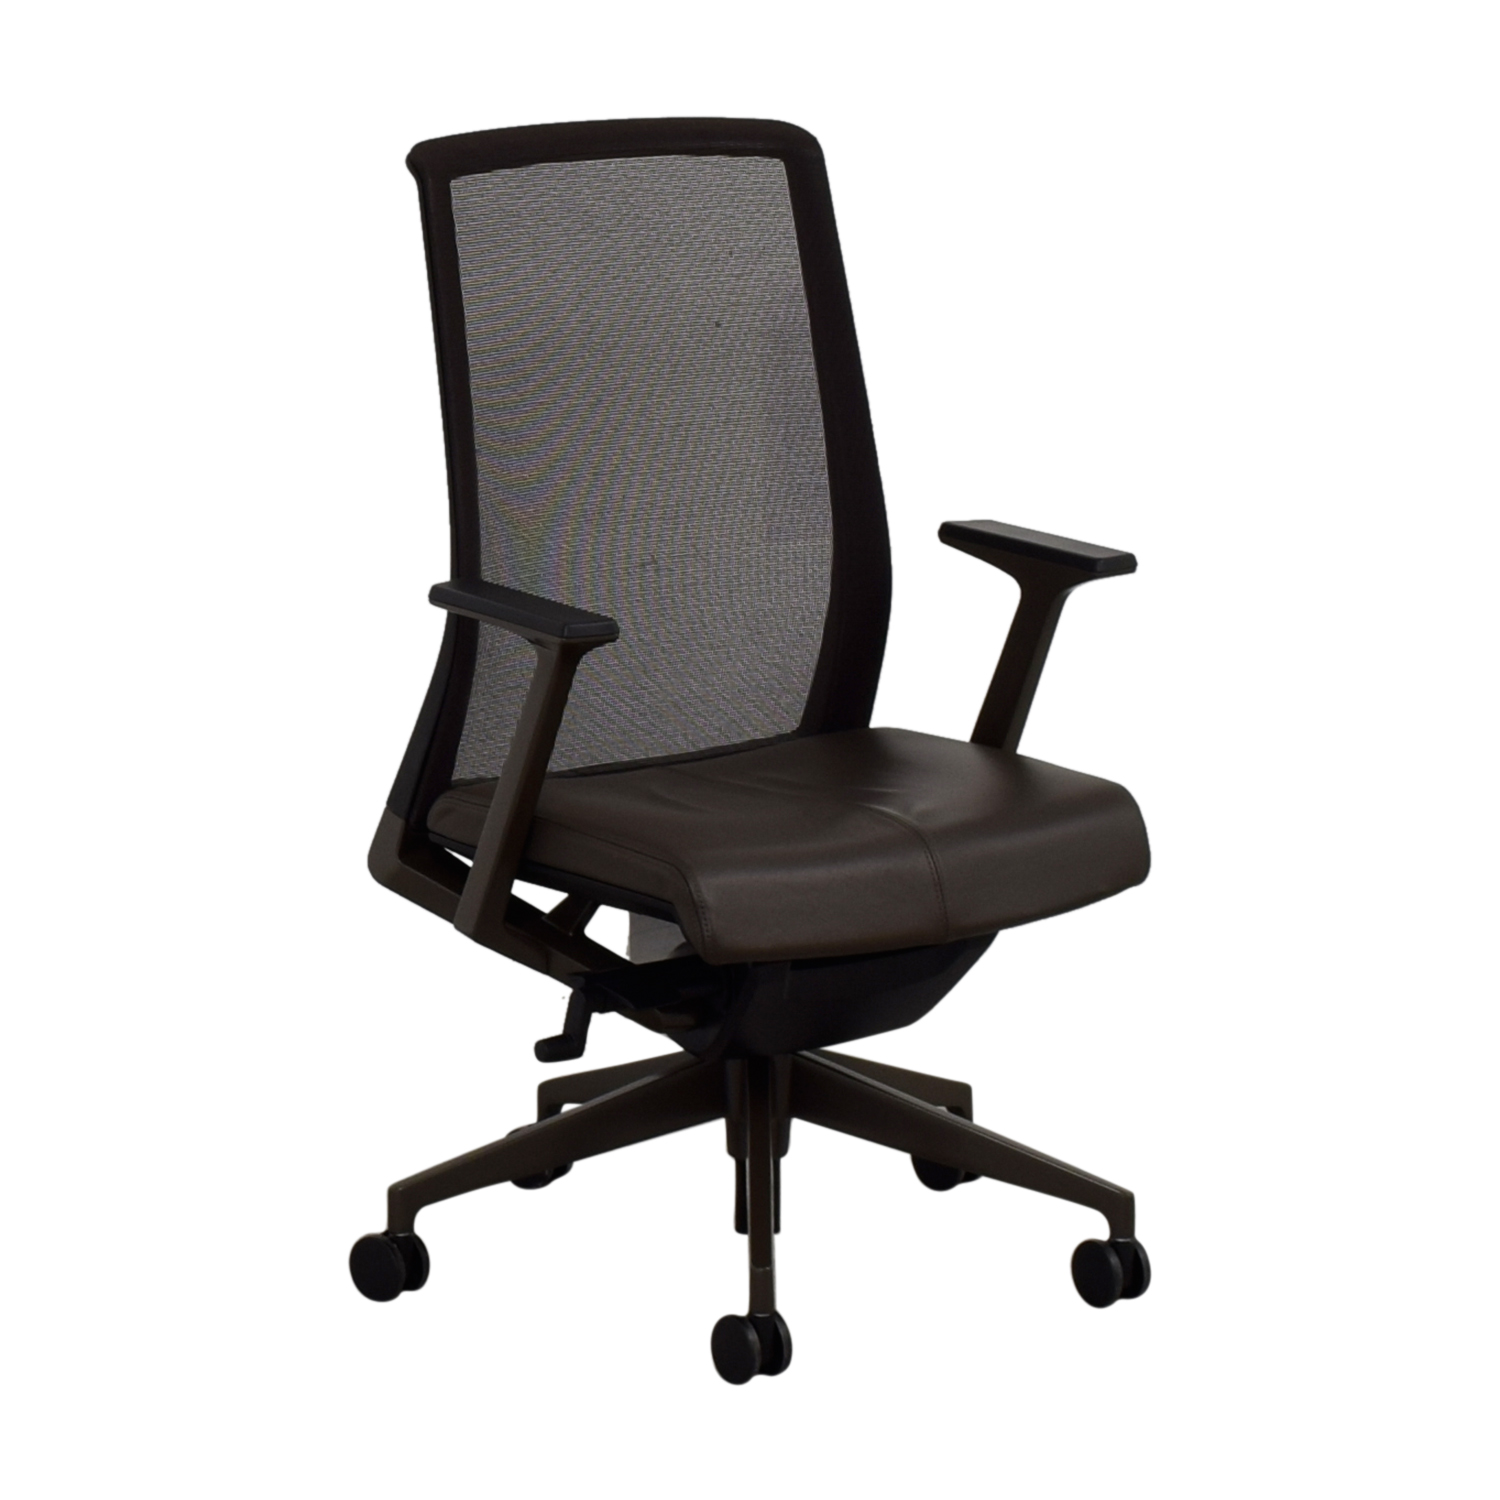 Crate & Barrel Crate & Barrel Haworth Brown Very Task Office Chair Chairs